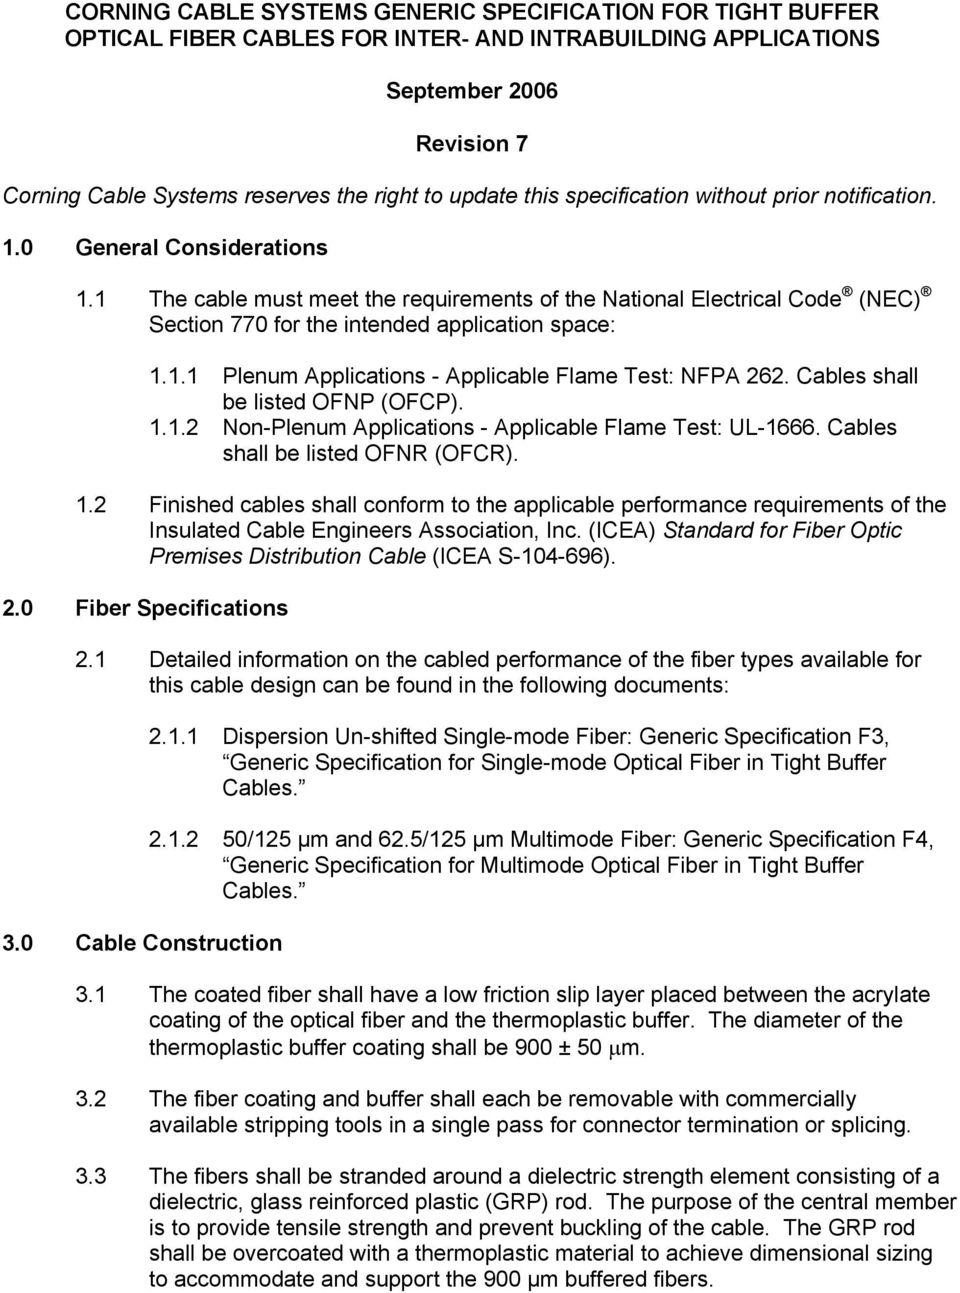 Corning Cable Systems Generic Specification For Tight Buffer Optical Submarine Fiber Optic Magnified Fop 2011 1 The Must Meet Requirements Of National Electrical Code Nec Section